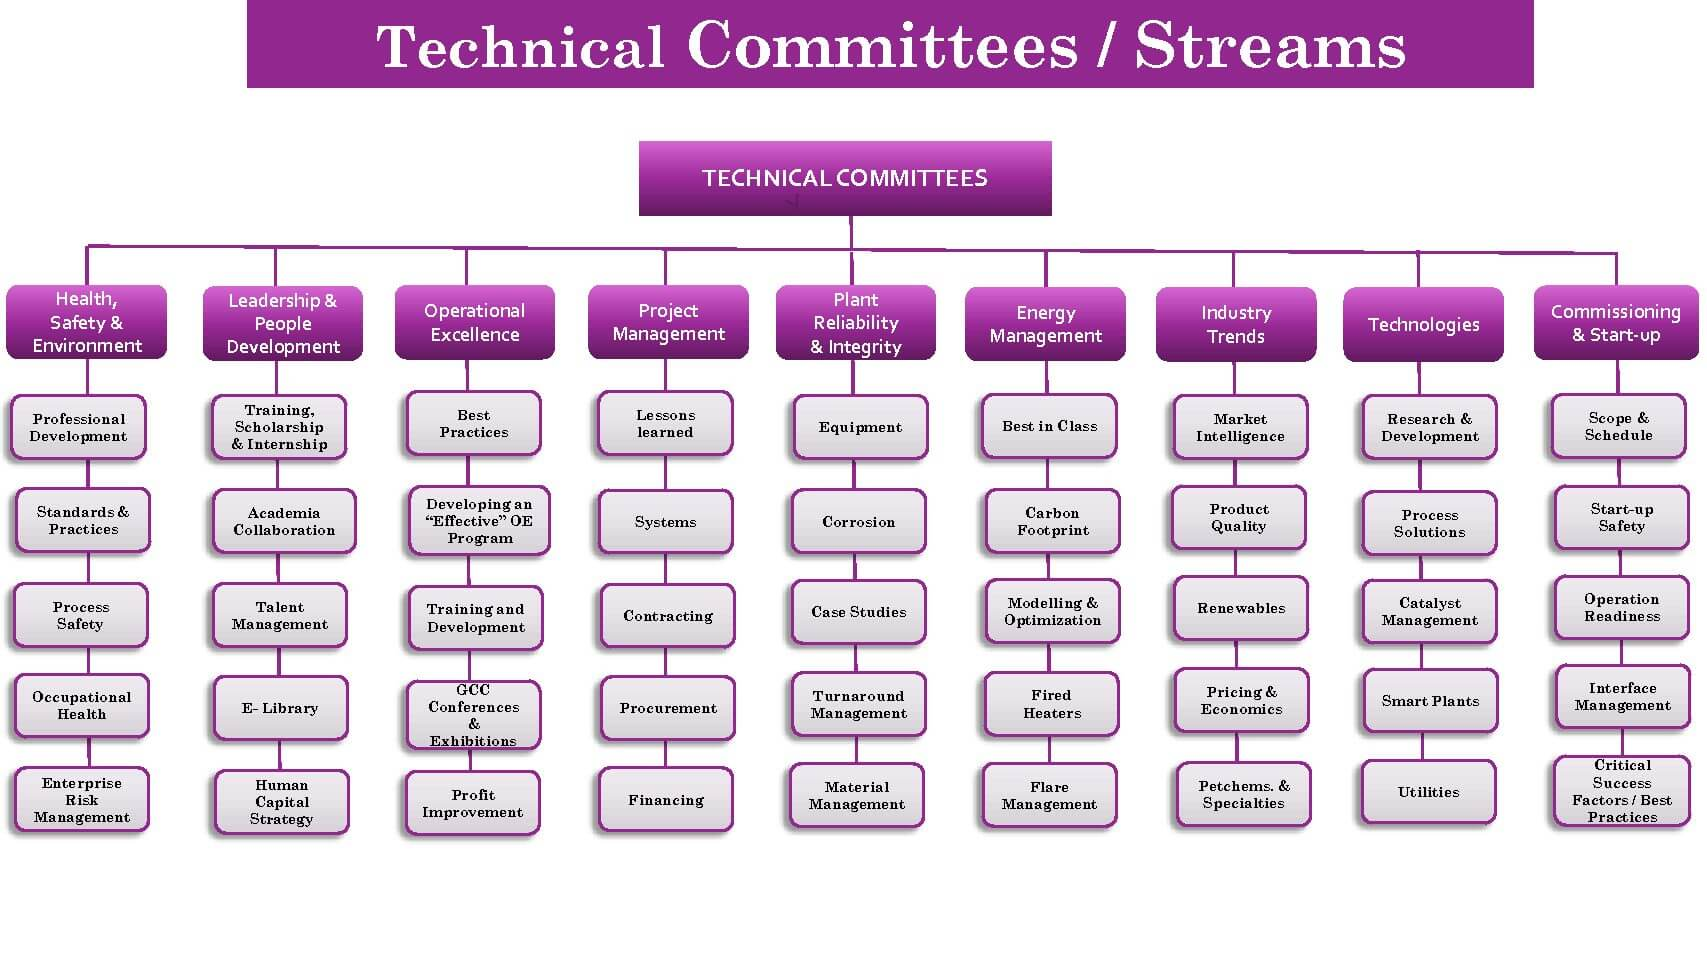 9-Technical-Streams-1-pdf.jpg